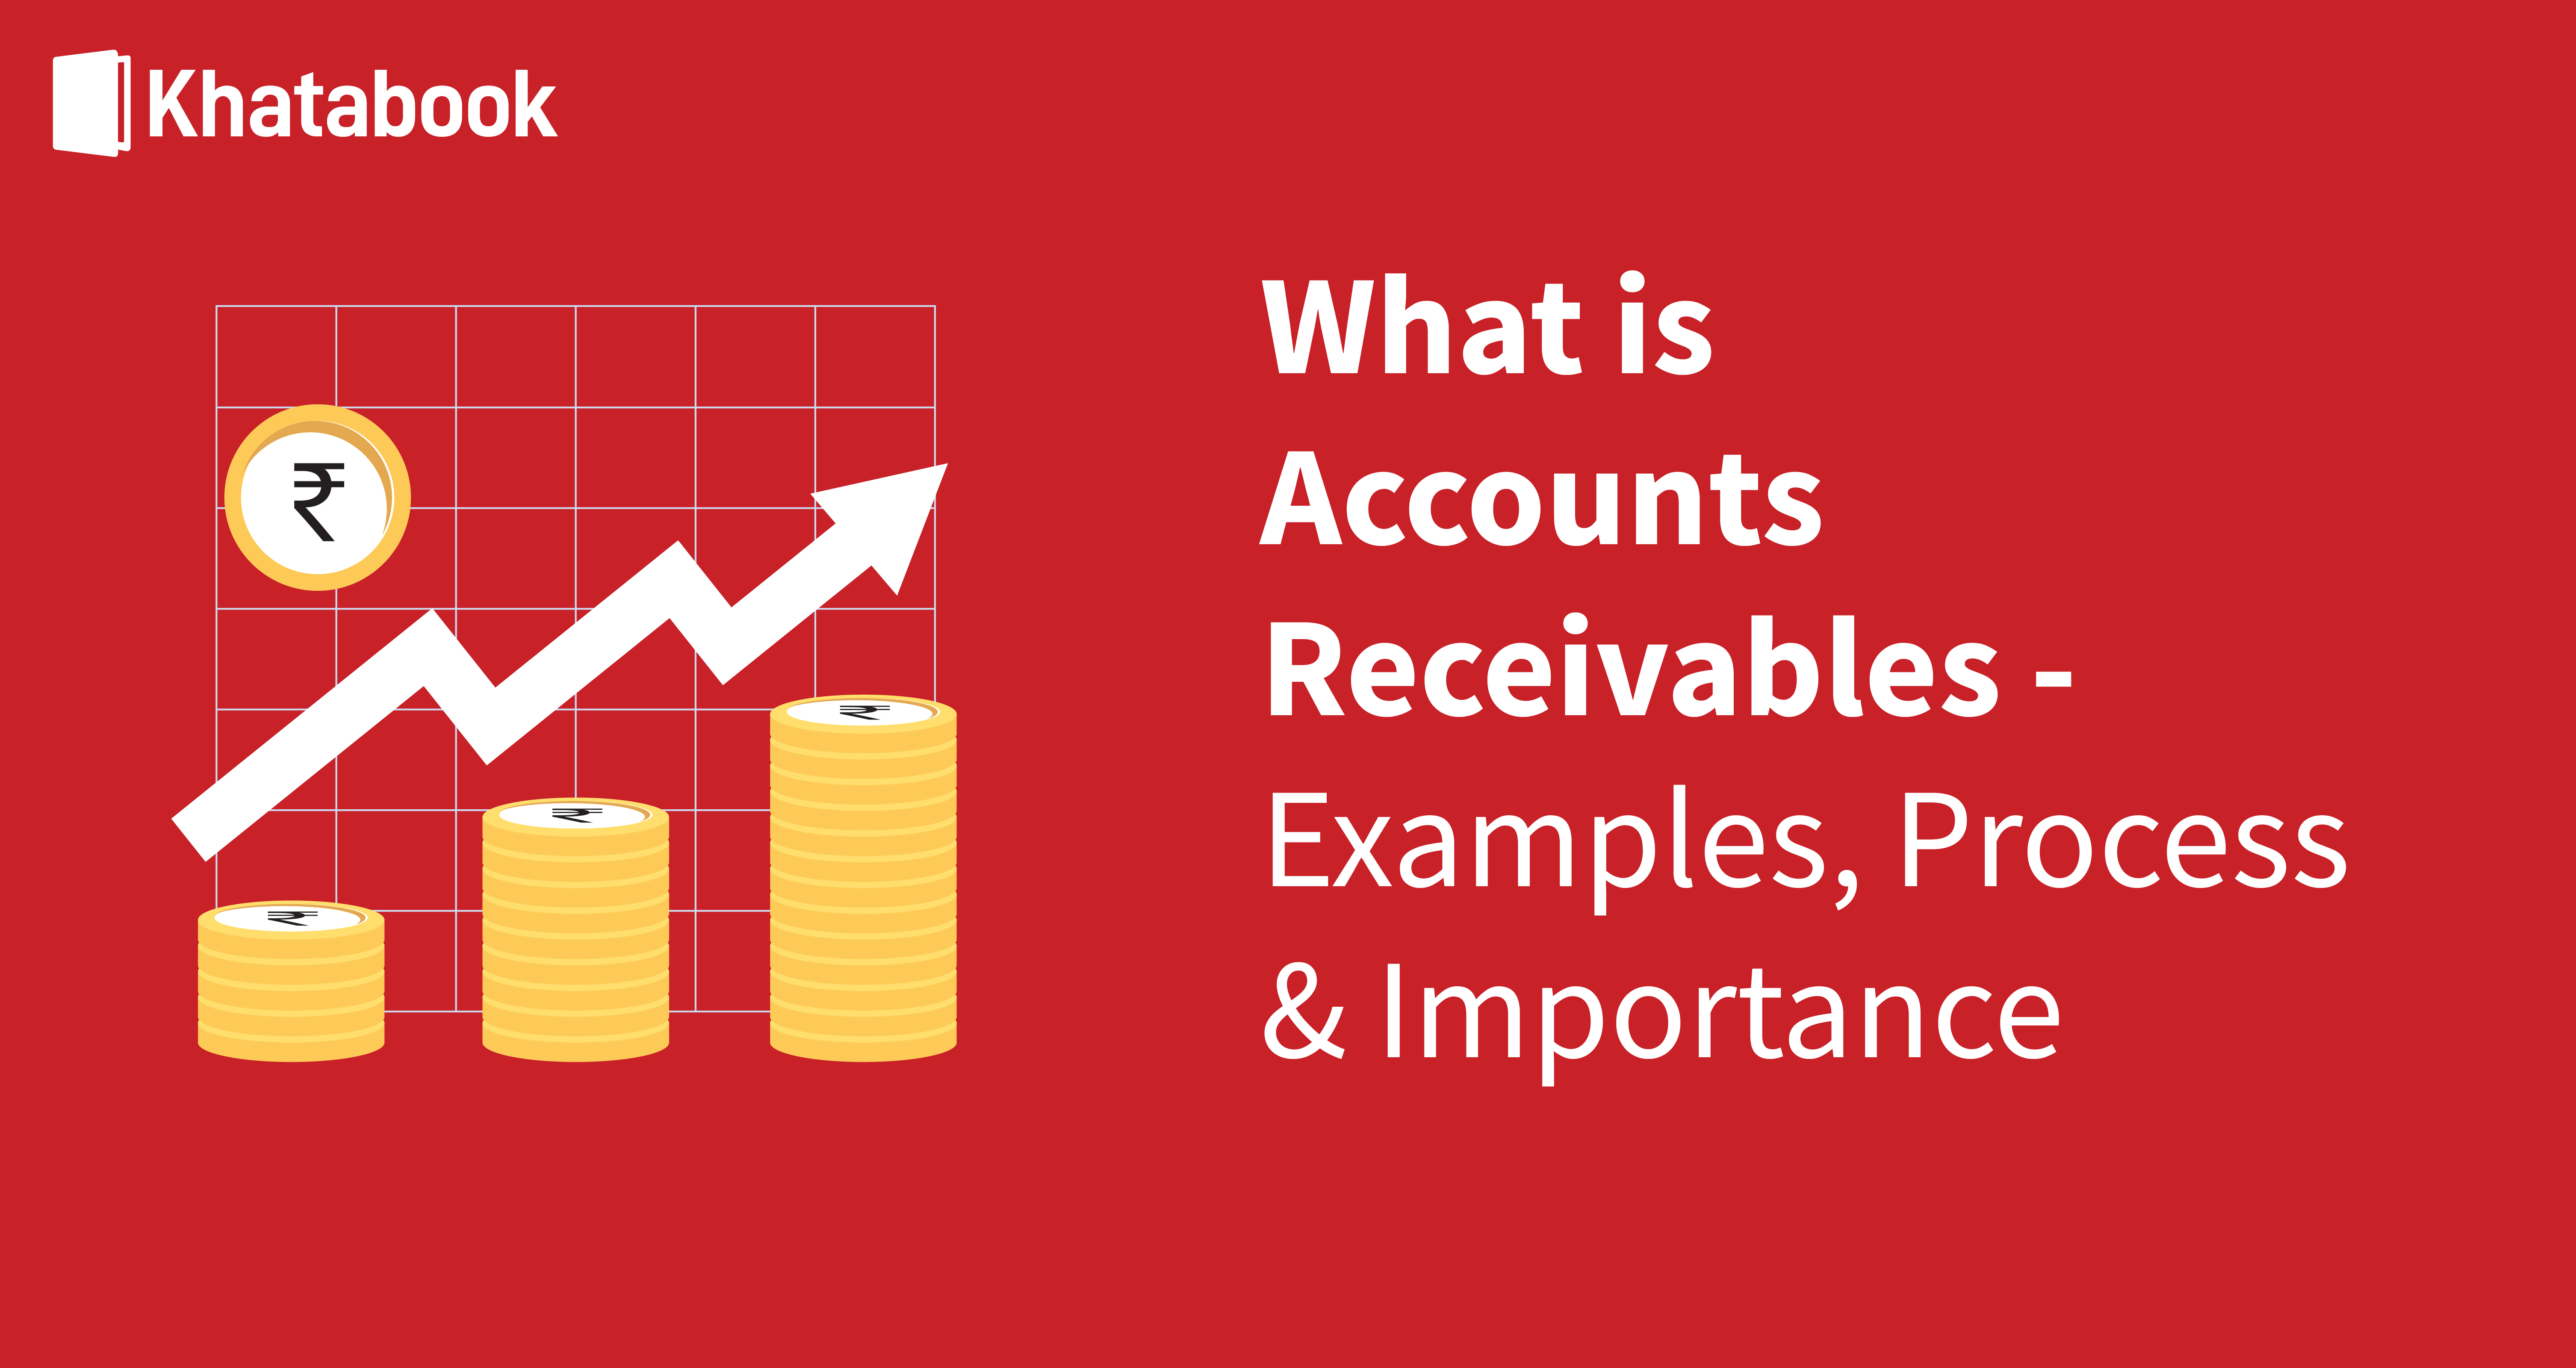 What is Accounts Receivables?